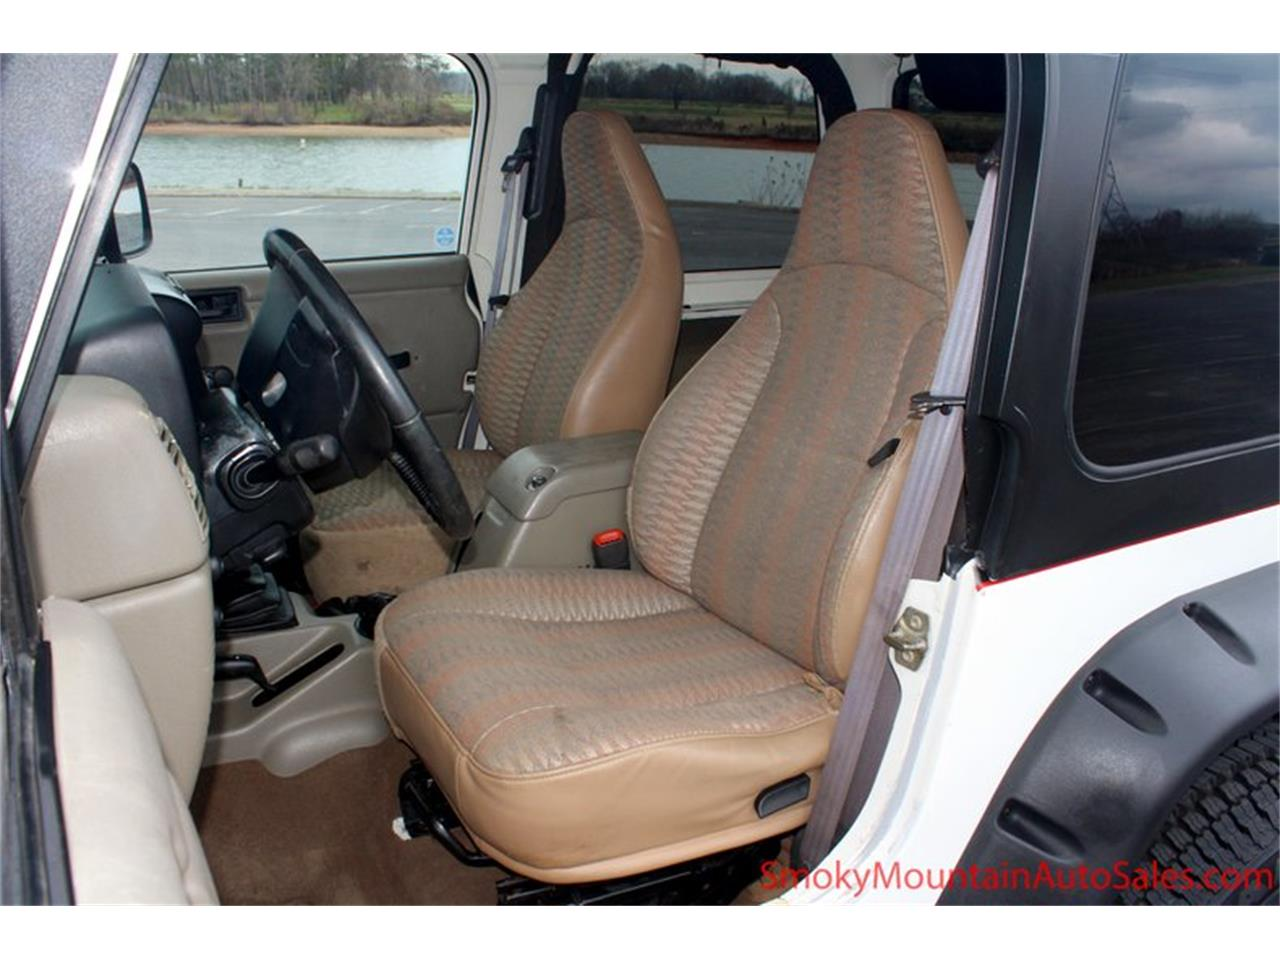 Large Picture of 2003 Wrangler located in Lenoir City Tennessee - $12,995.00 Offered by Smoky Mountain Traders - P95Y